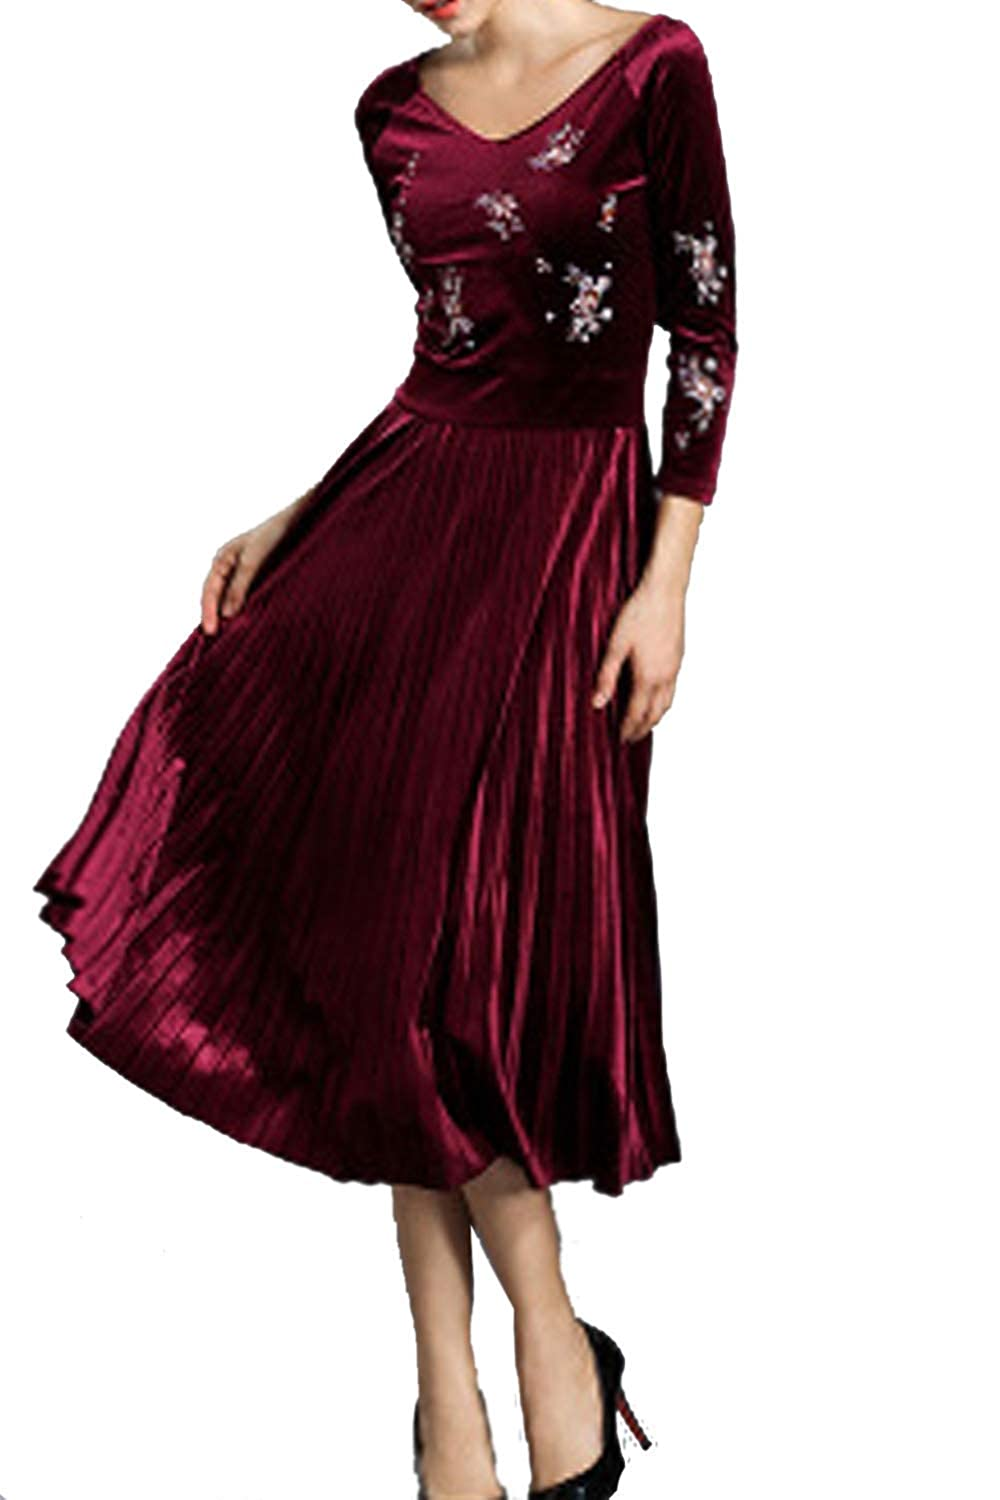 945b5d69f57 Unomatch Women Decorated Bust Pleated Skirt Elegant Dress at Amazon Women s  Clothing store